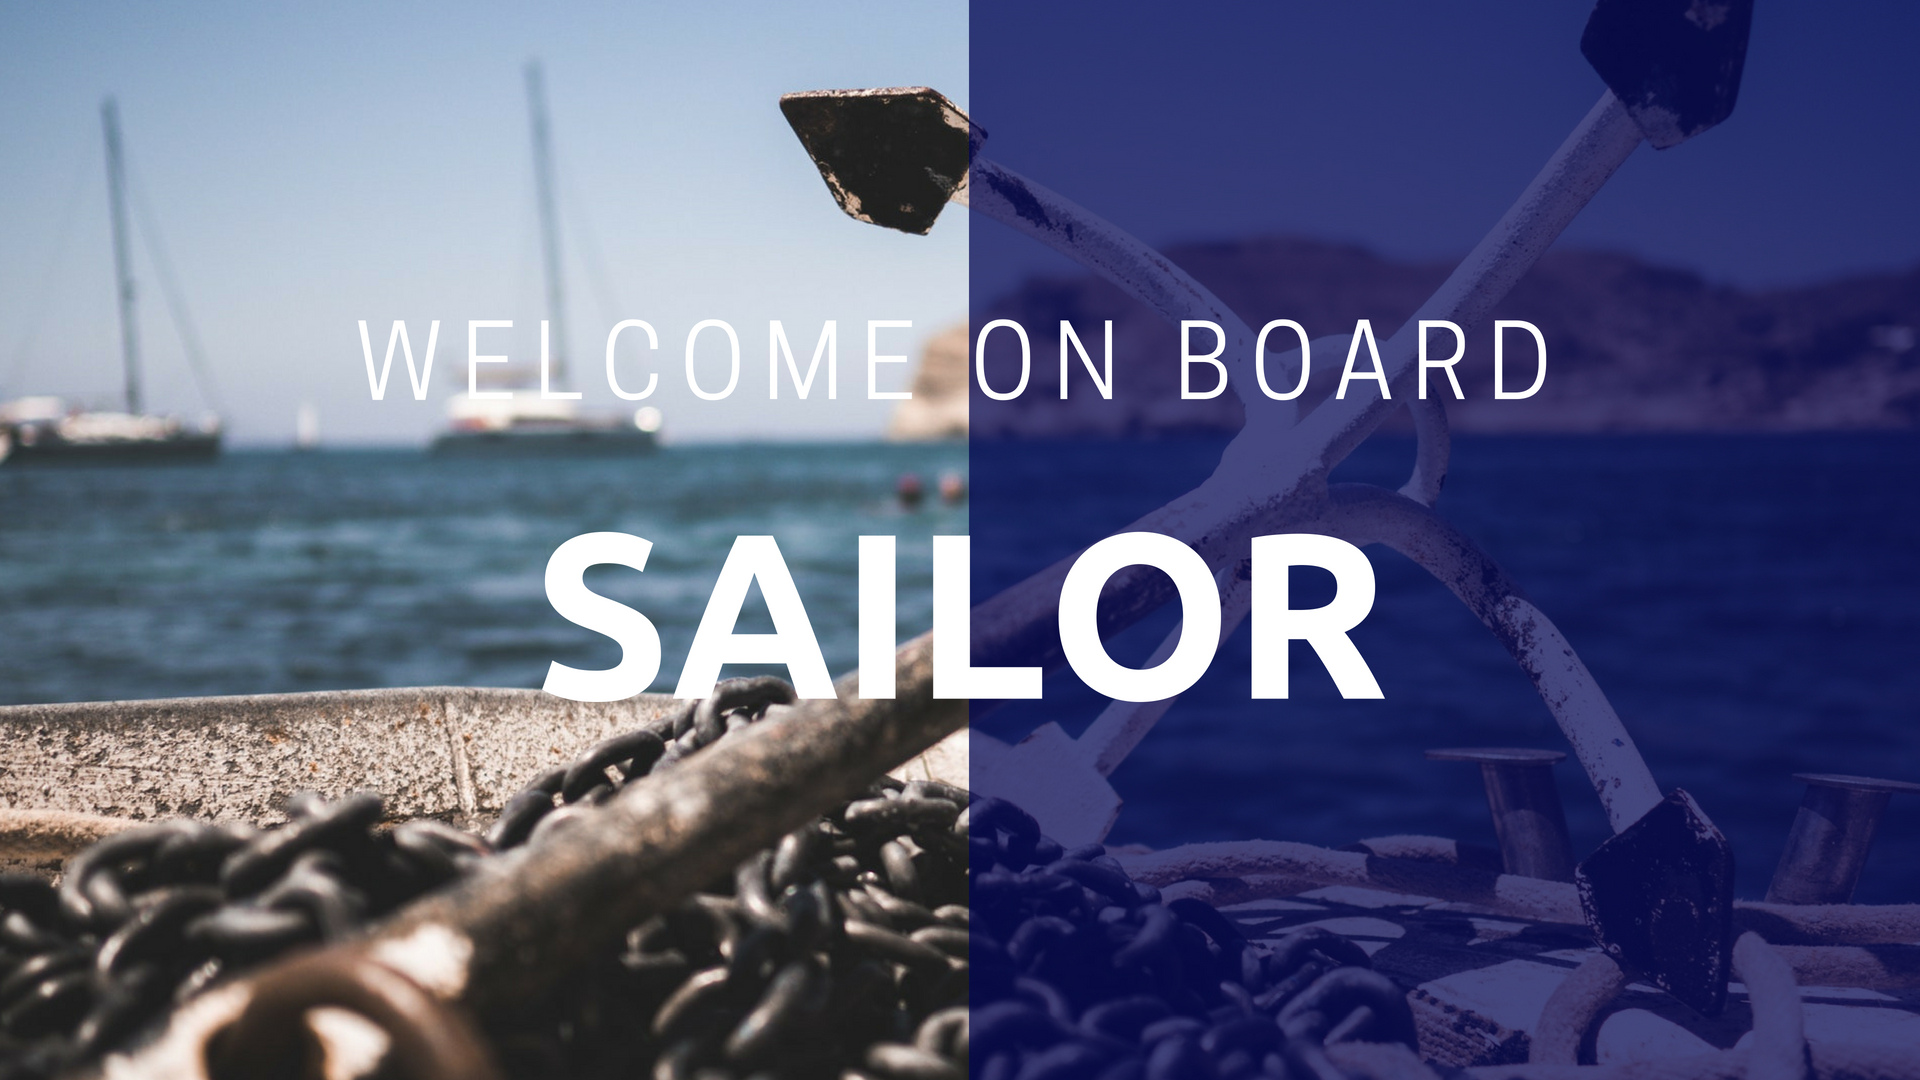 Welcome on board sailor photo